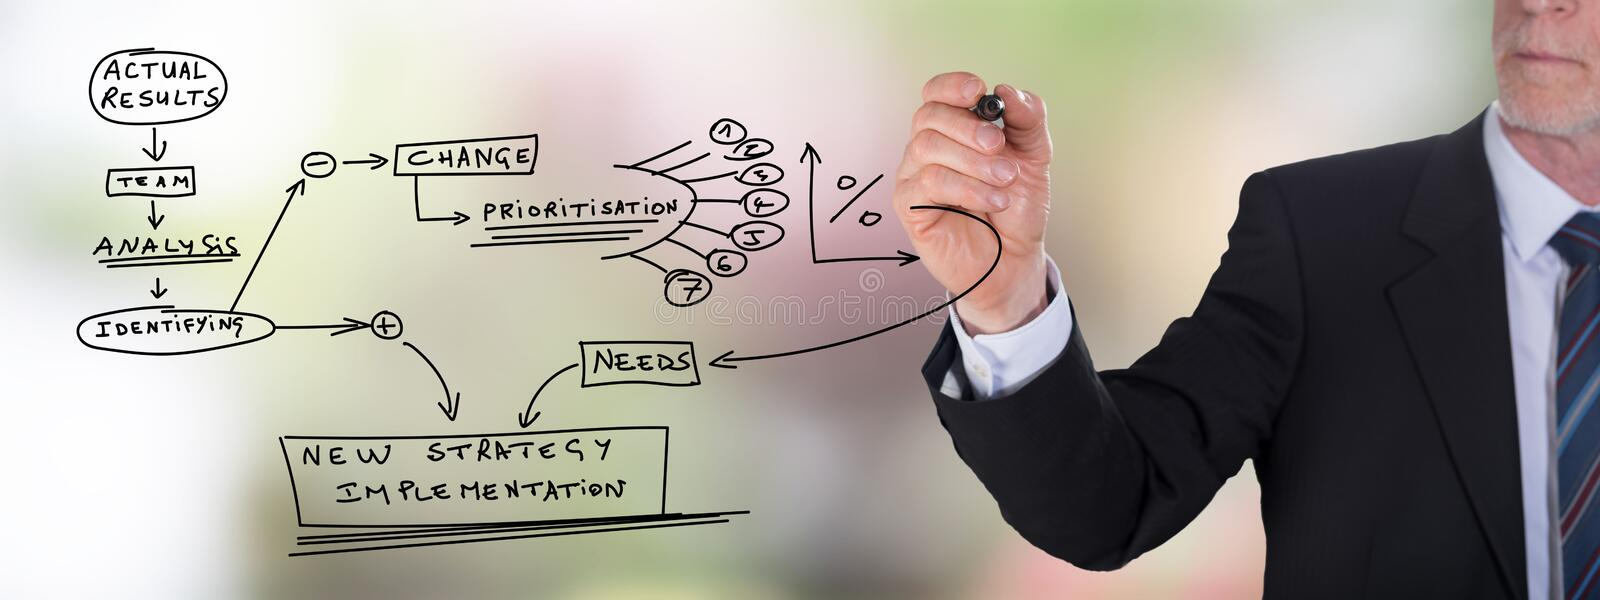 Business change concept drawn by a businessman royalty free stock image